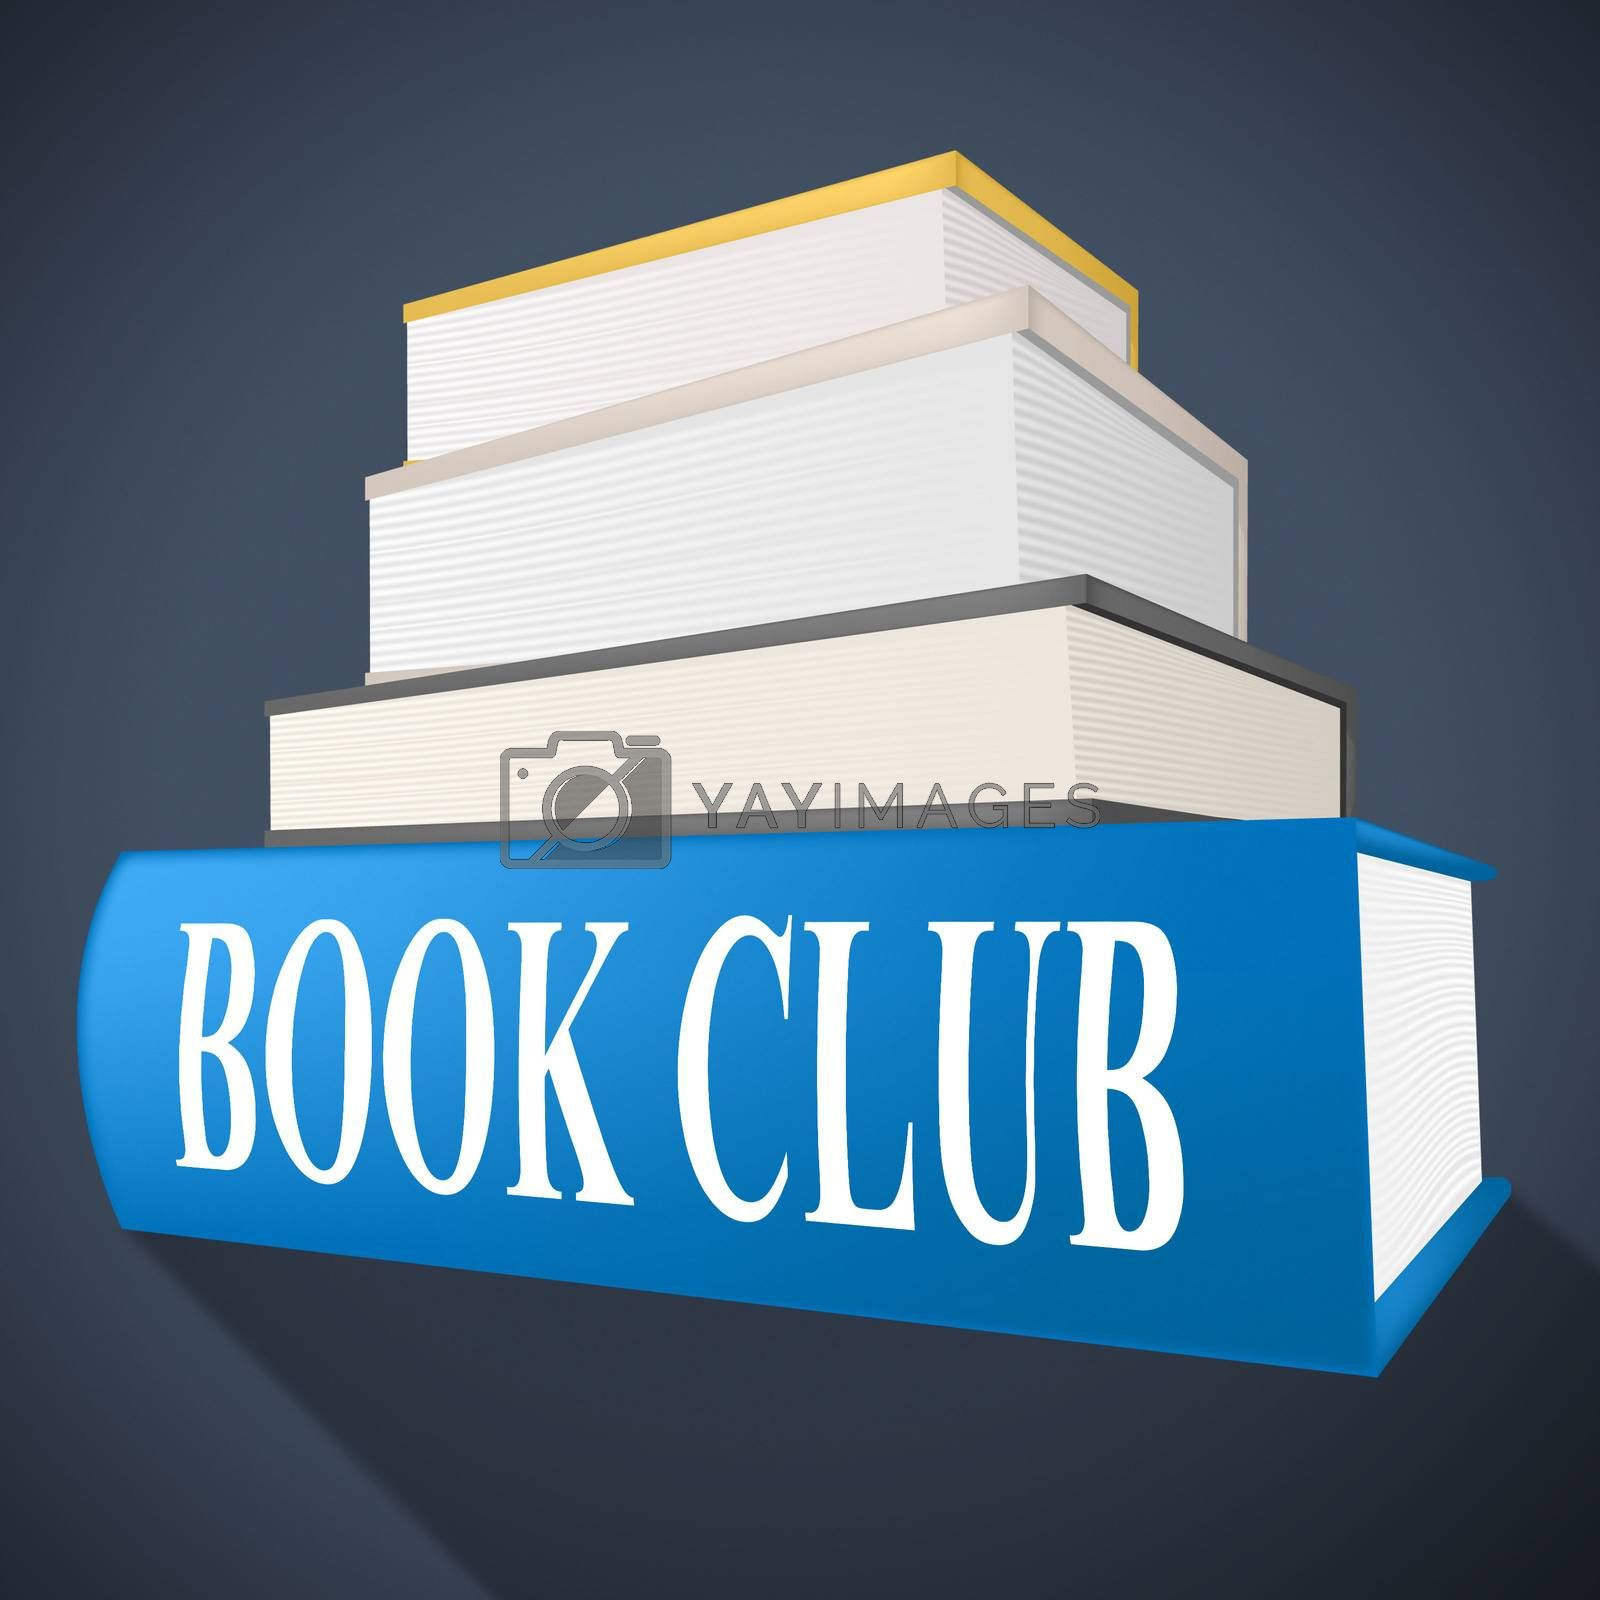 Book Club Means Team Social And Books by stuartmiles